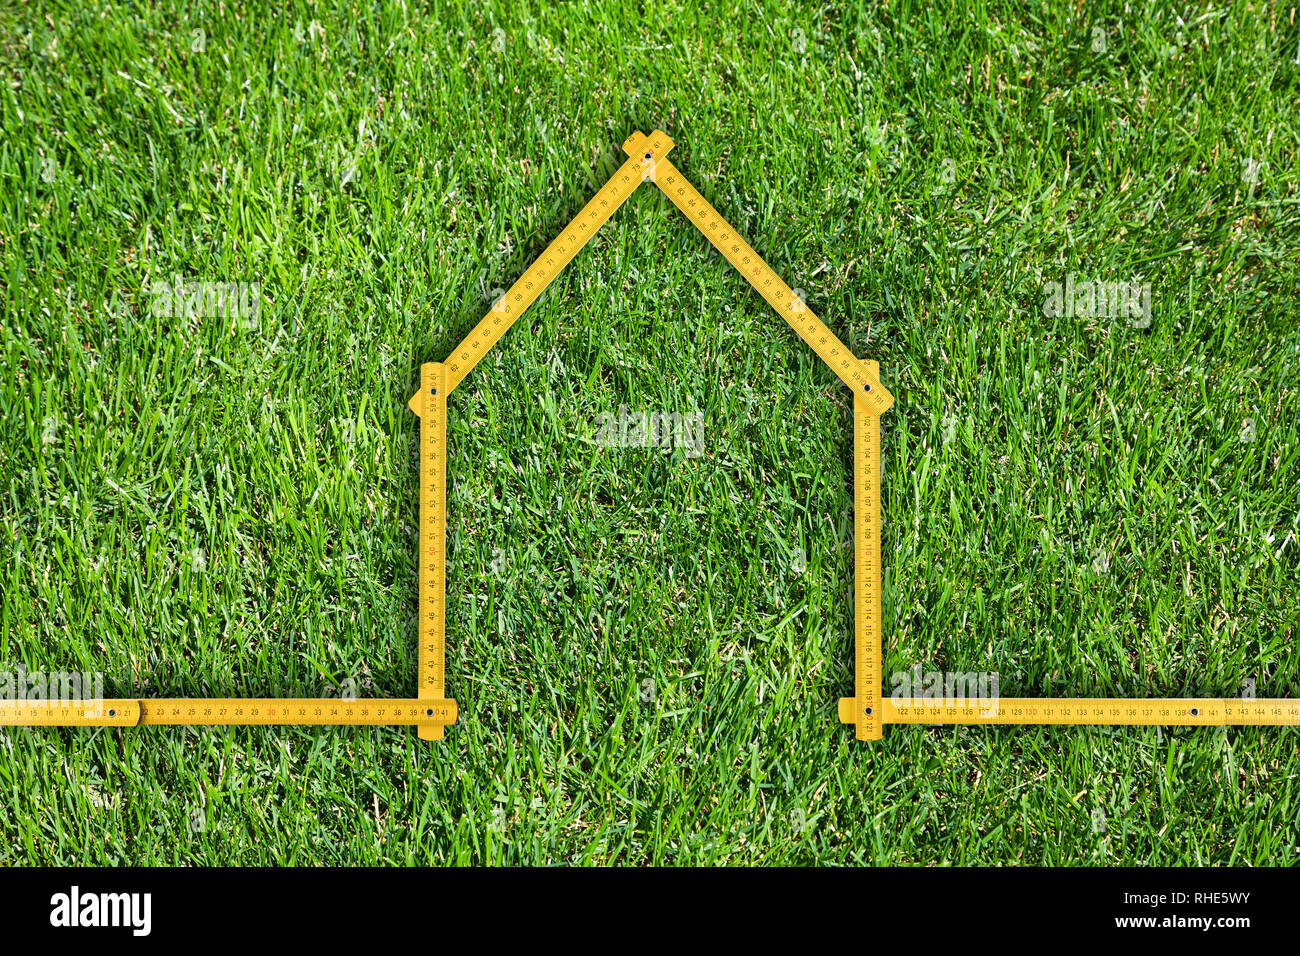 Yellow meter ruler folded as house isolated on green grass - Stock Image